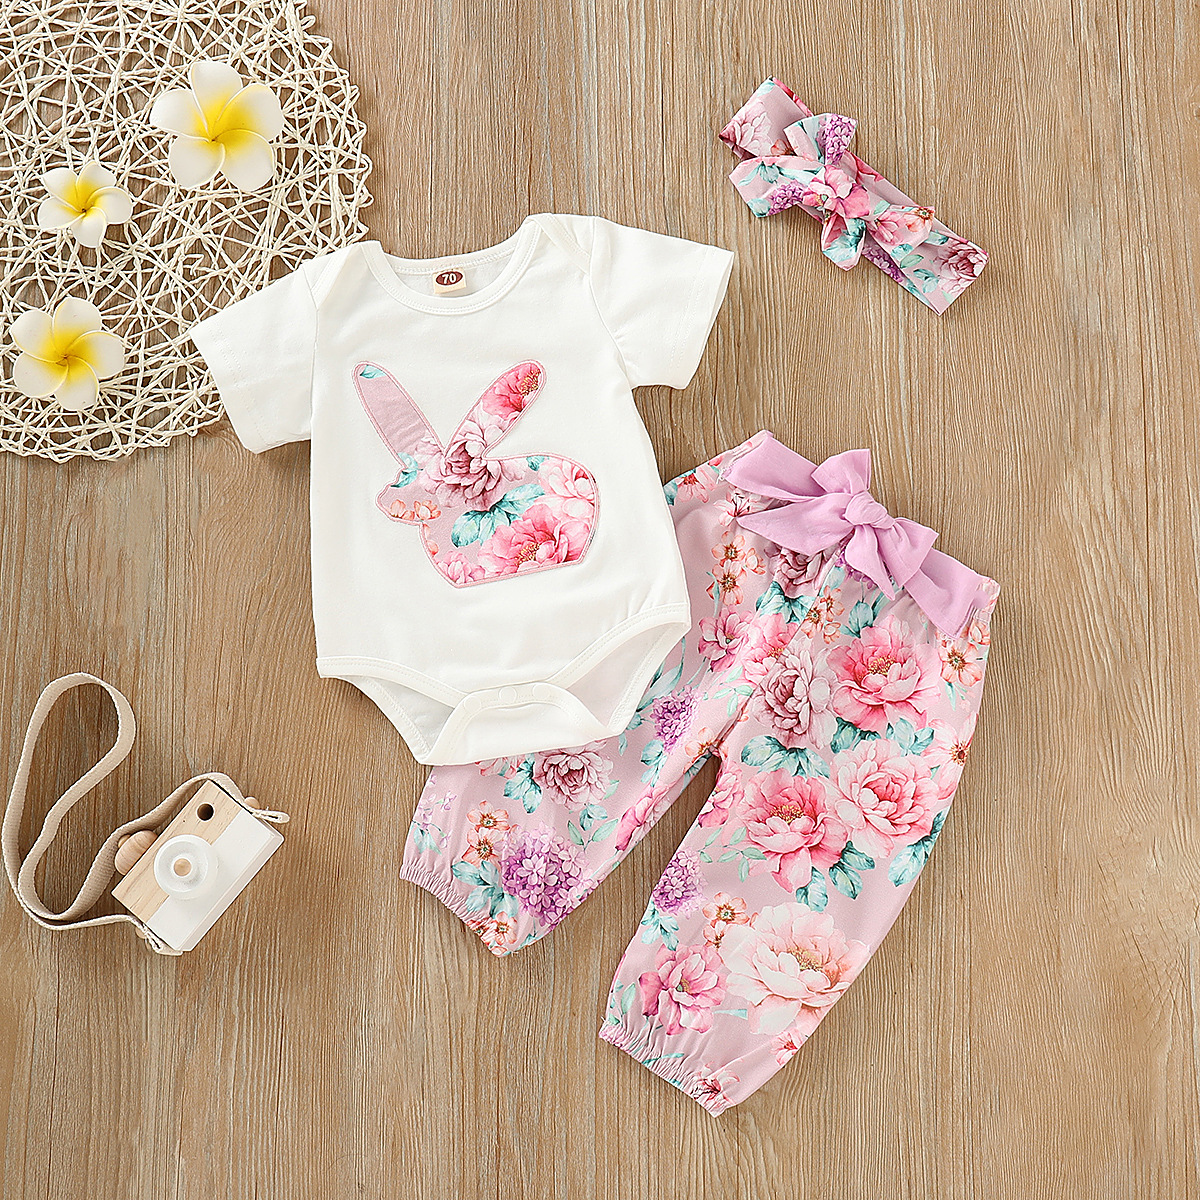 European and American Girls'Decorative Flower Printing Suit Summer Children's Romper Pants Hair Band  3 Pieces Suit